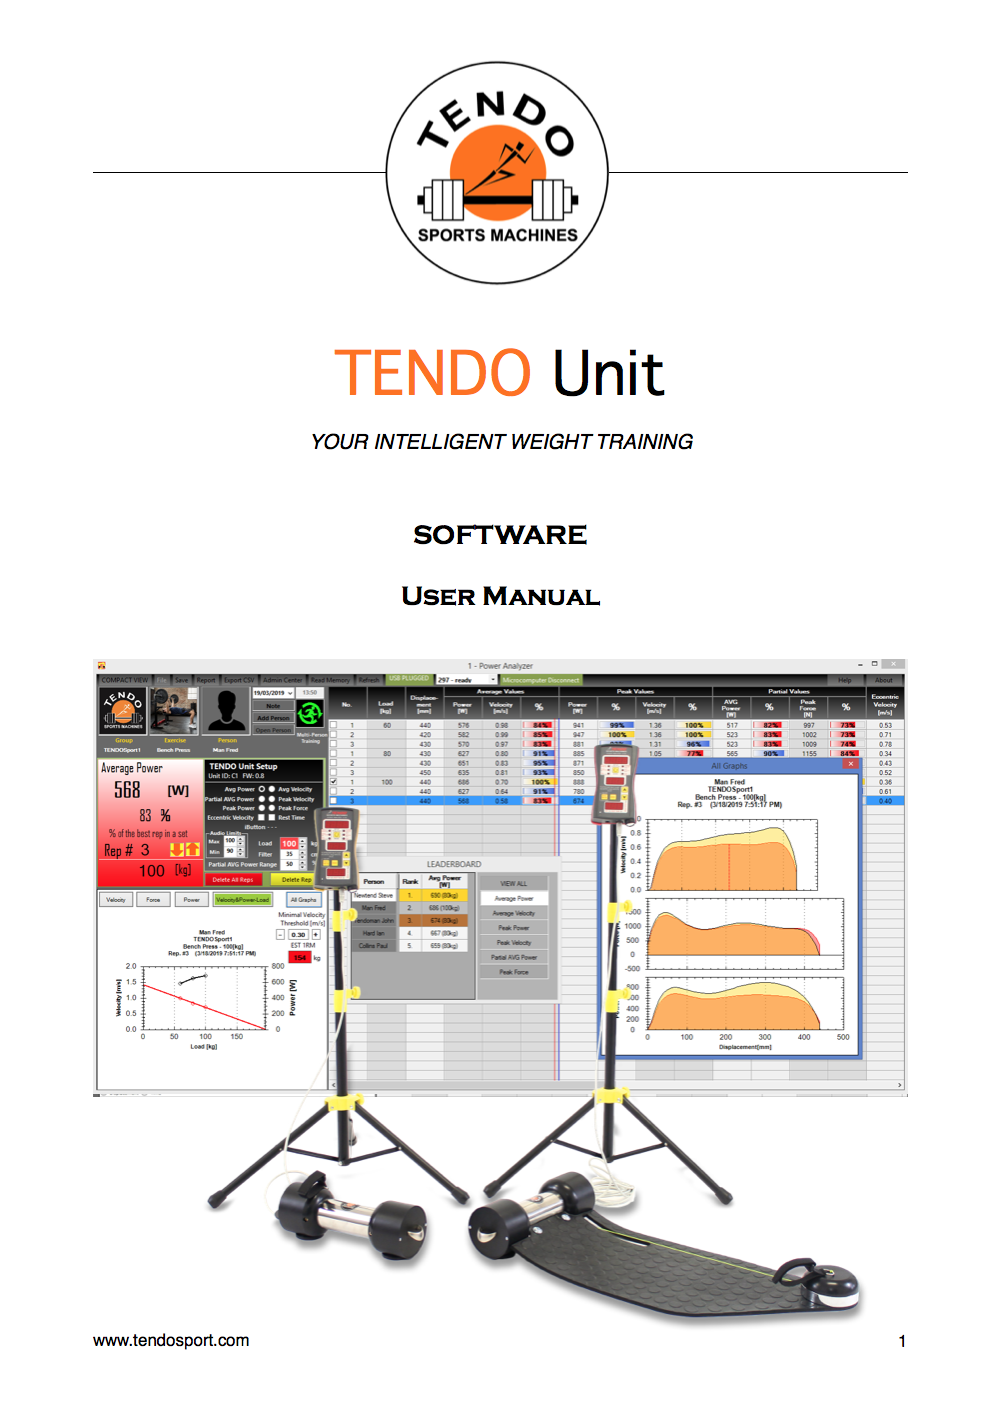 tendo unit computer software manual cover